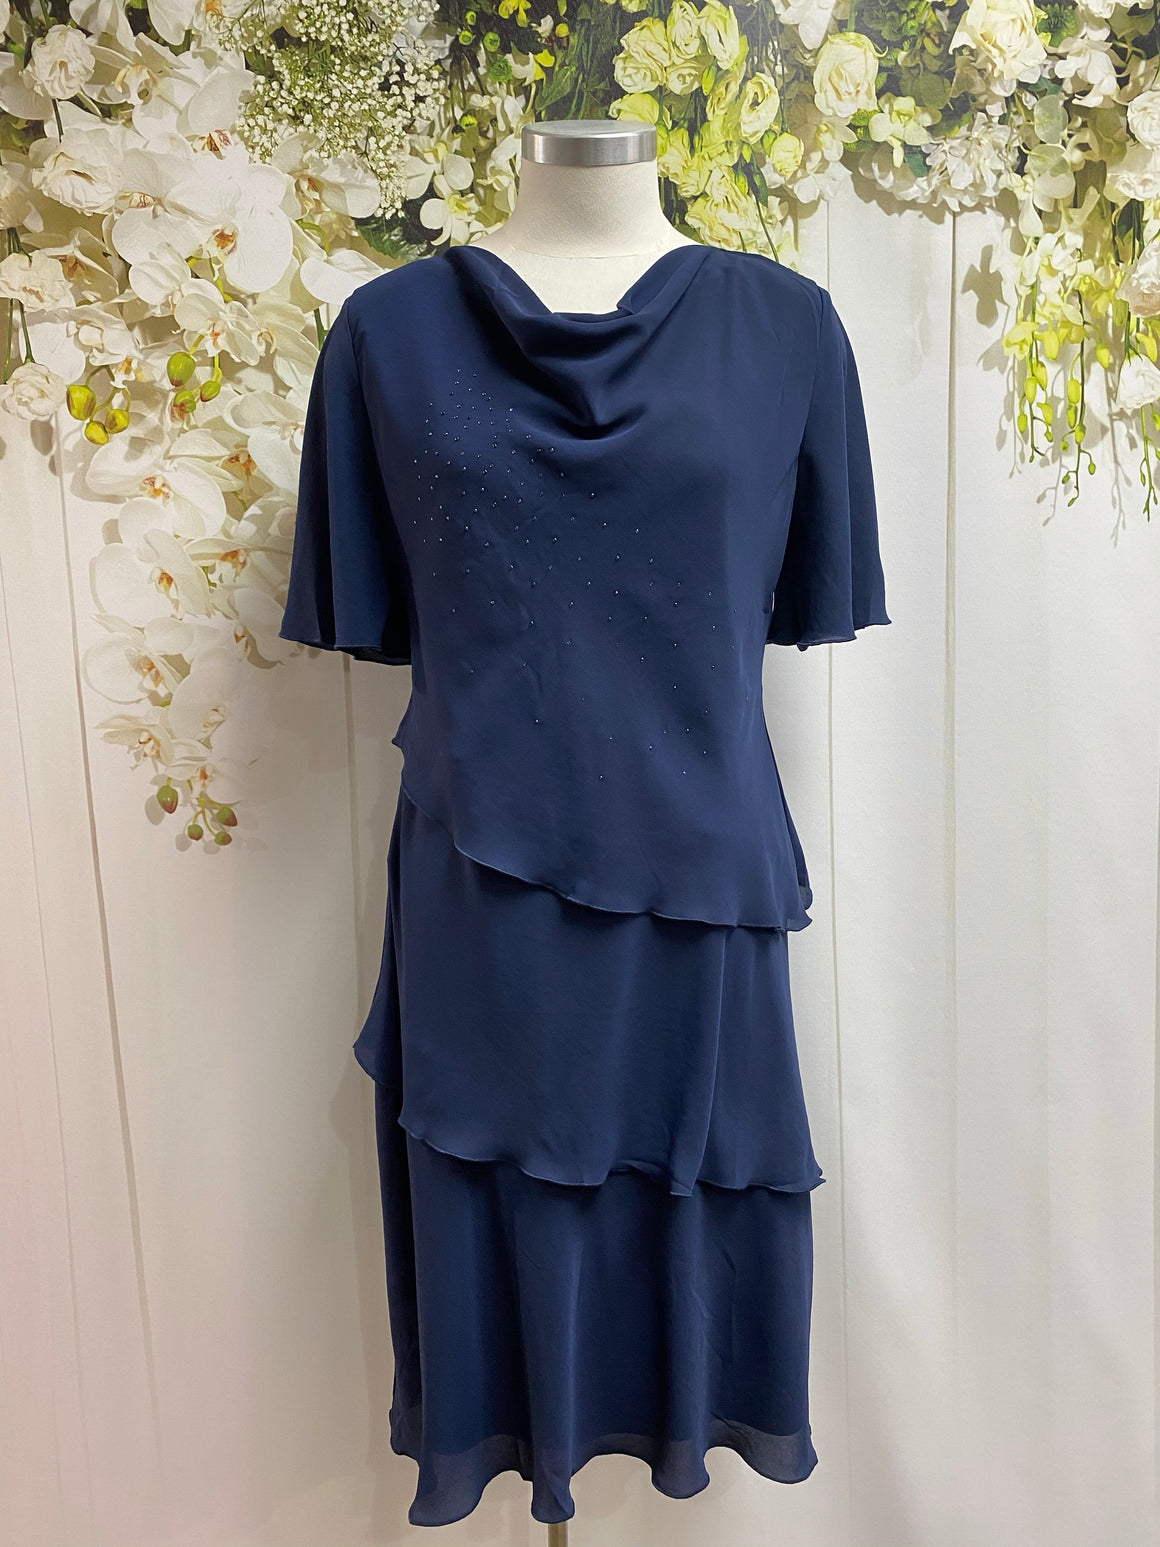 Yesadress Cowl Neck Layer Dress - Navy - Fashion Focus